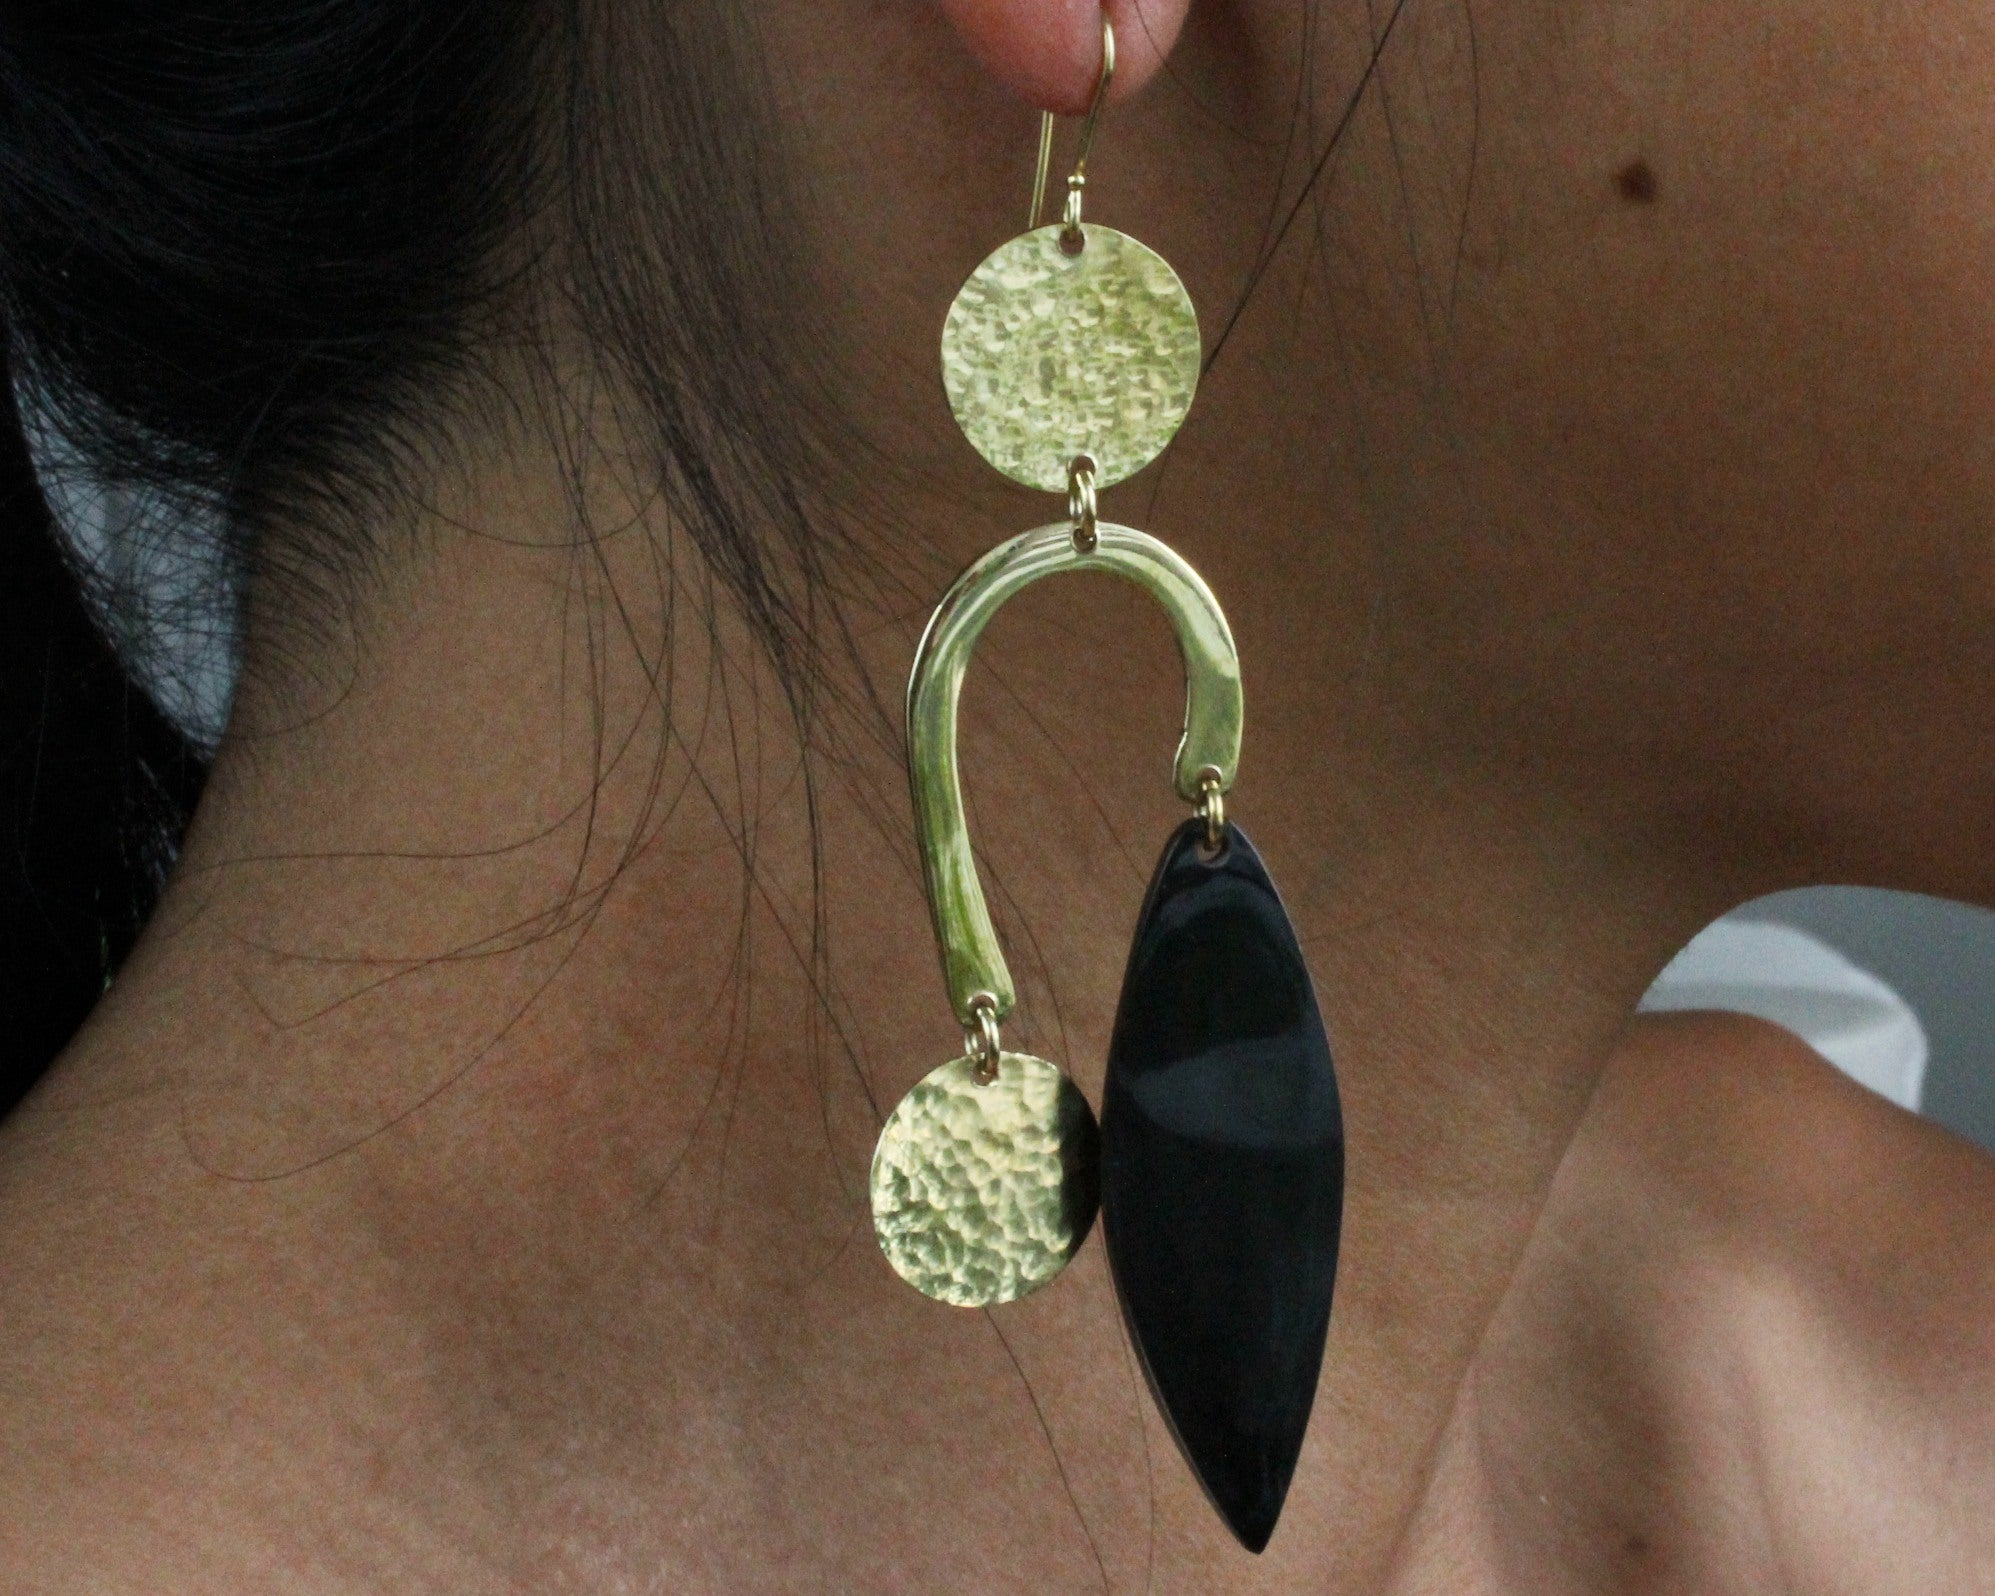 Handmade earrings, brass, hanging from ear, recycled, upcycled, black bone